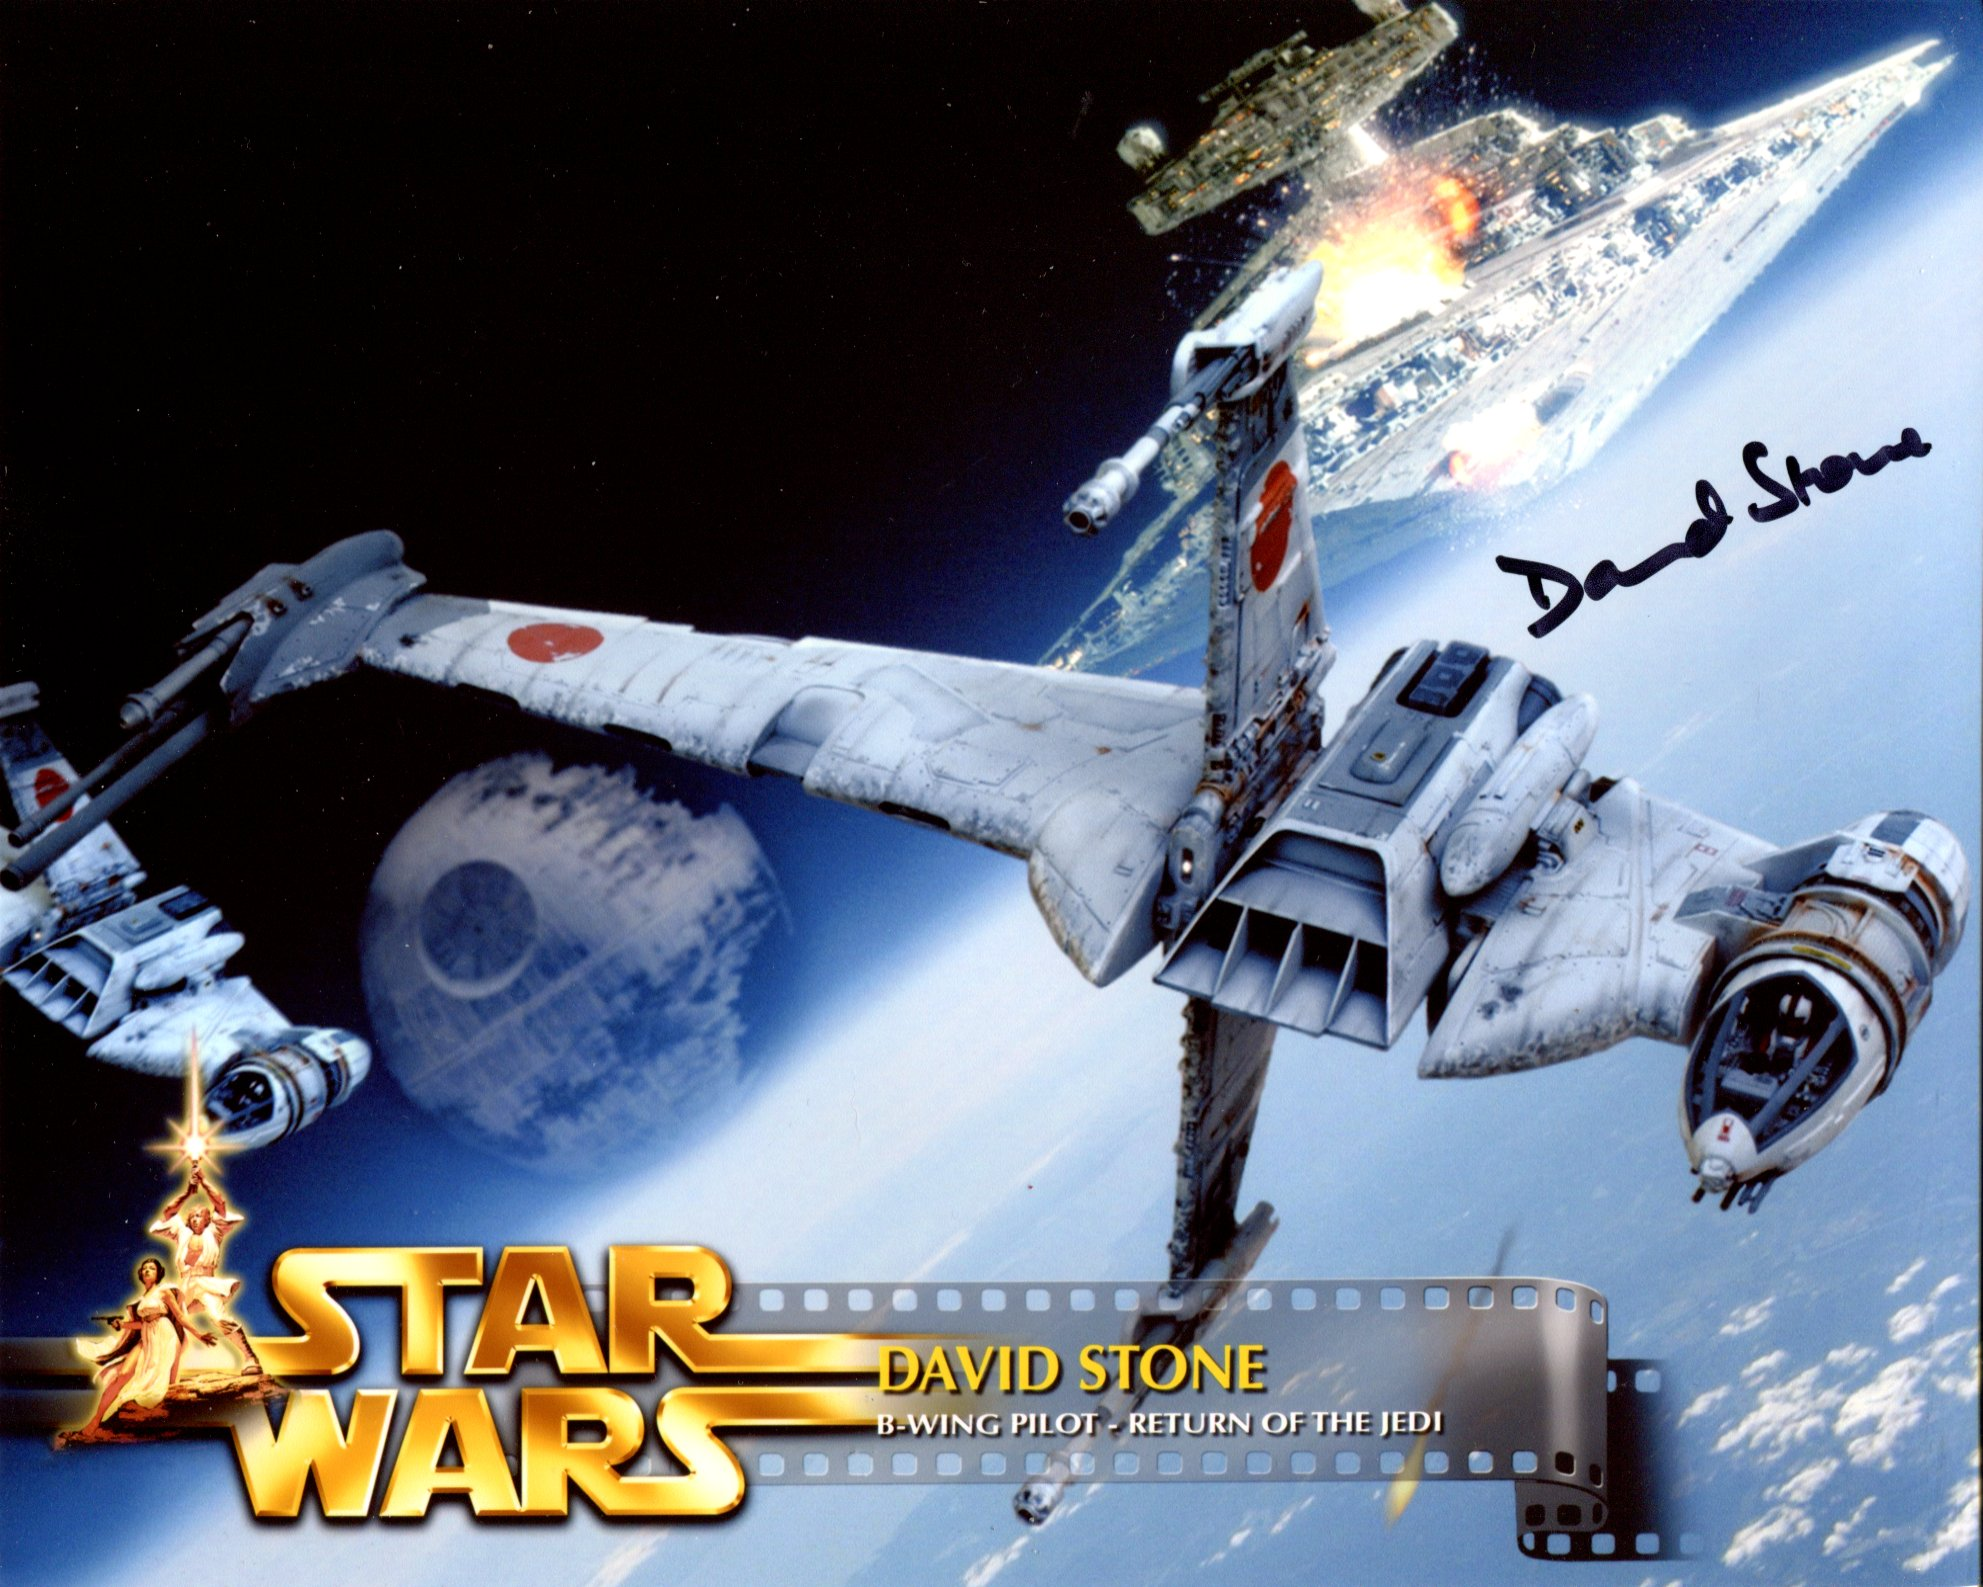 Star Wars 8x10 photo from Return of the Jedi, signed by B-Wing pilot David Stone. Good condition.